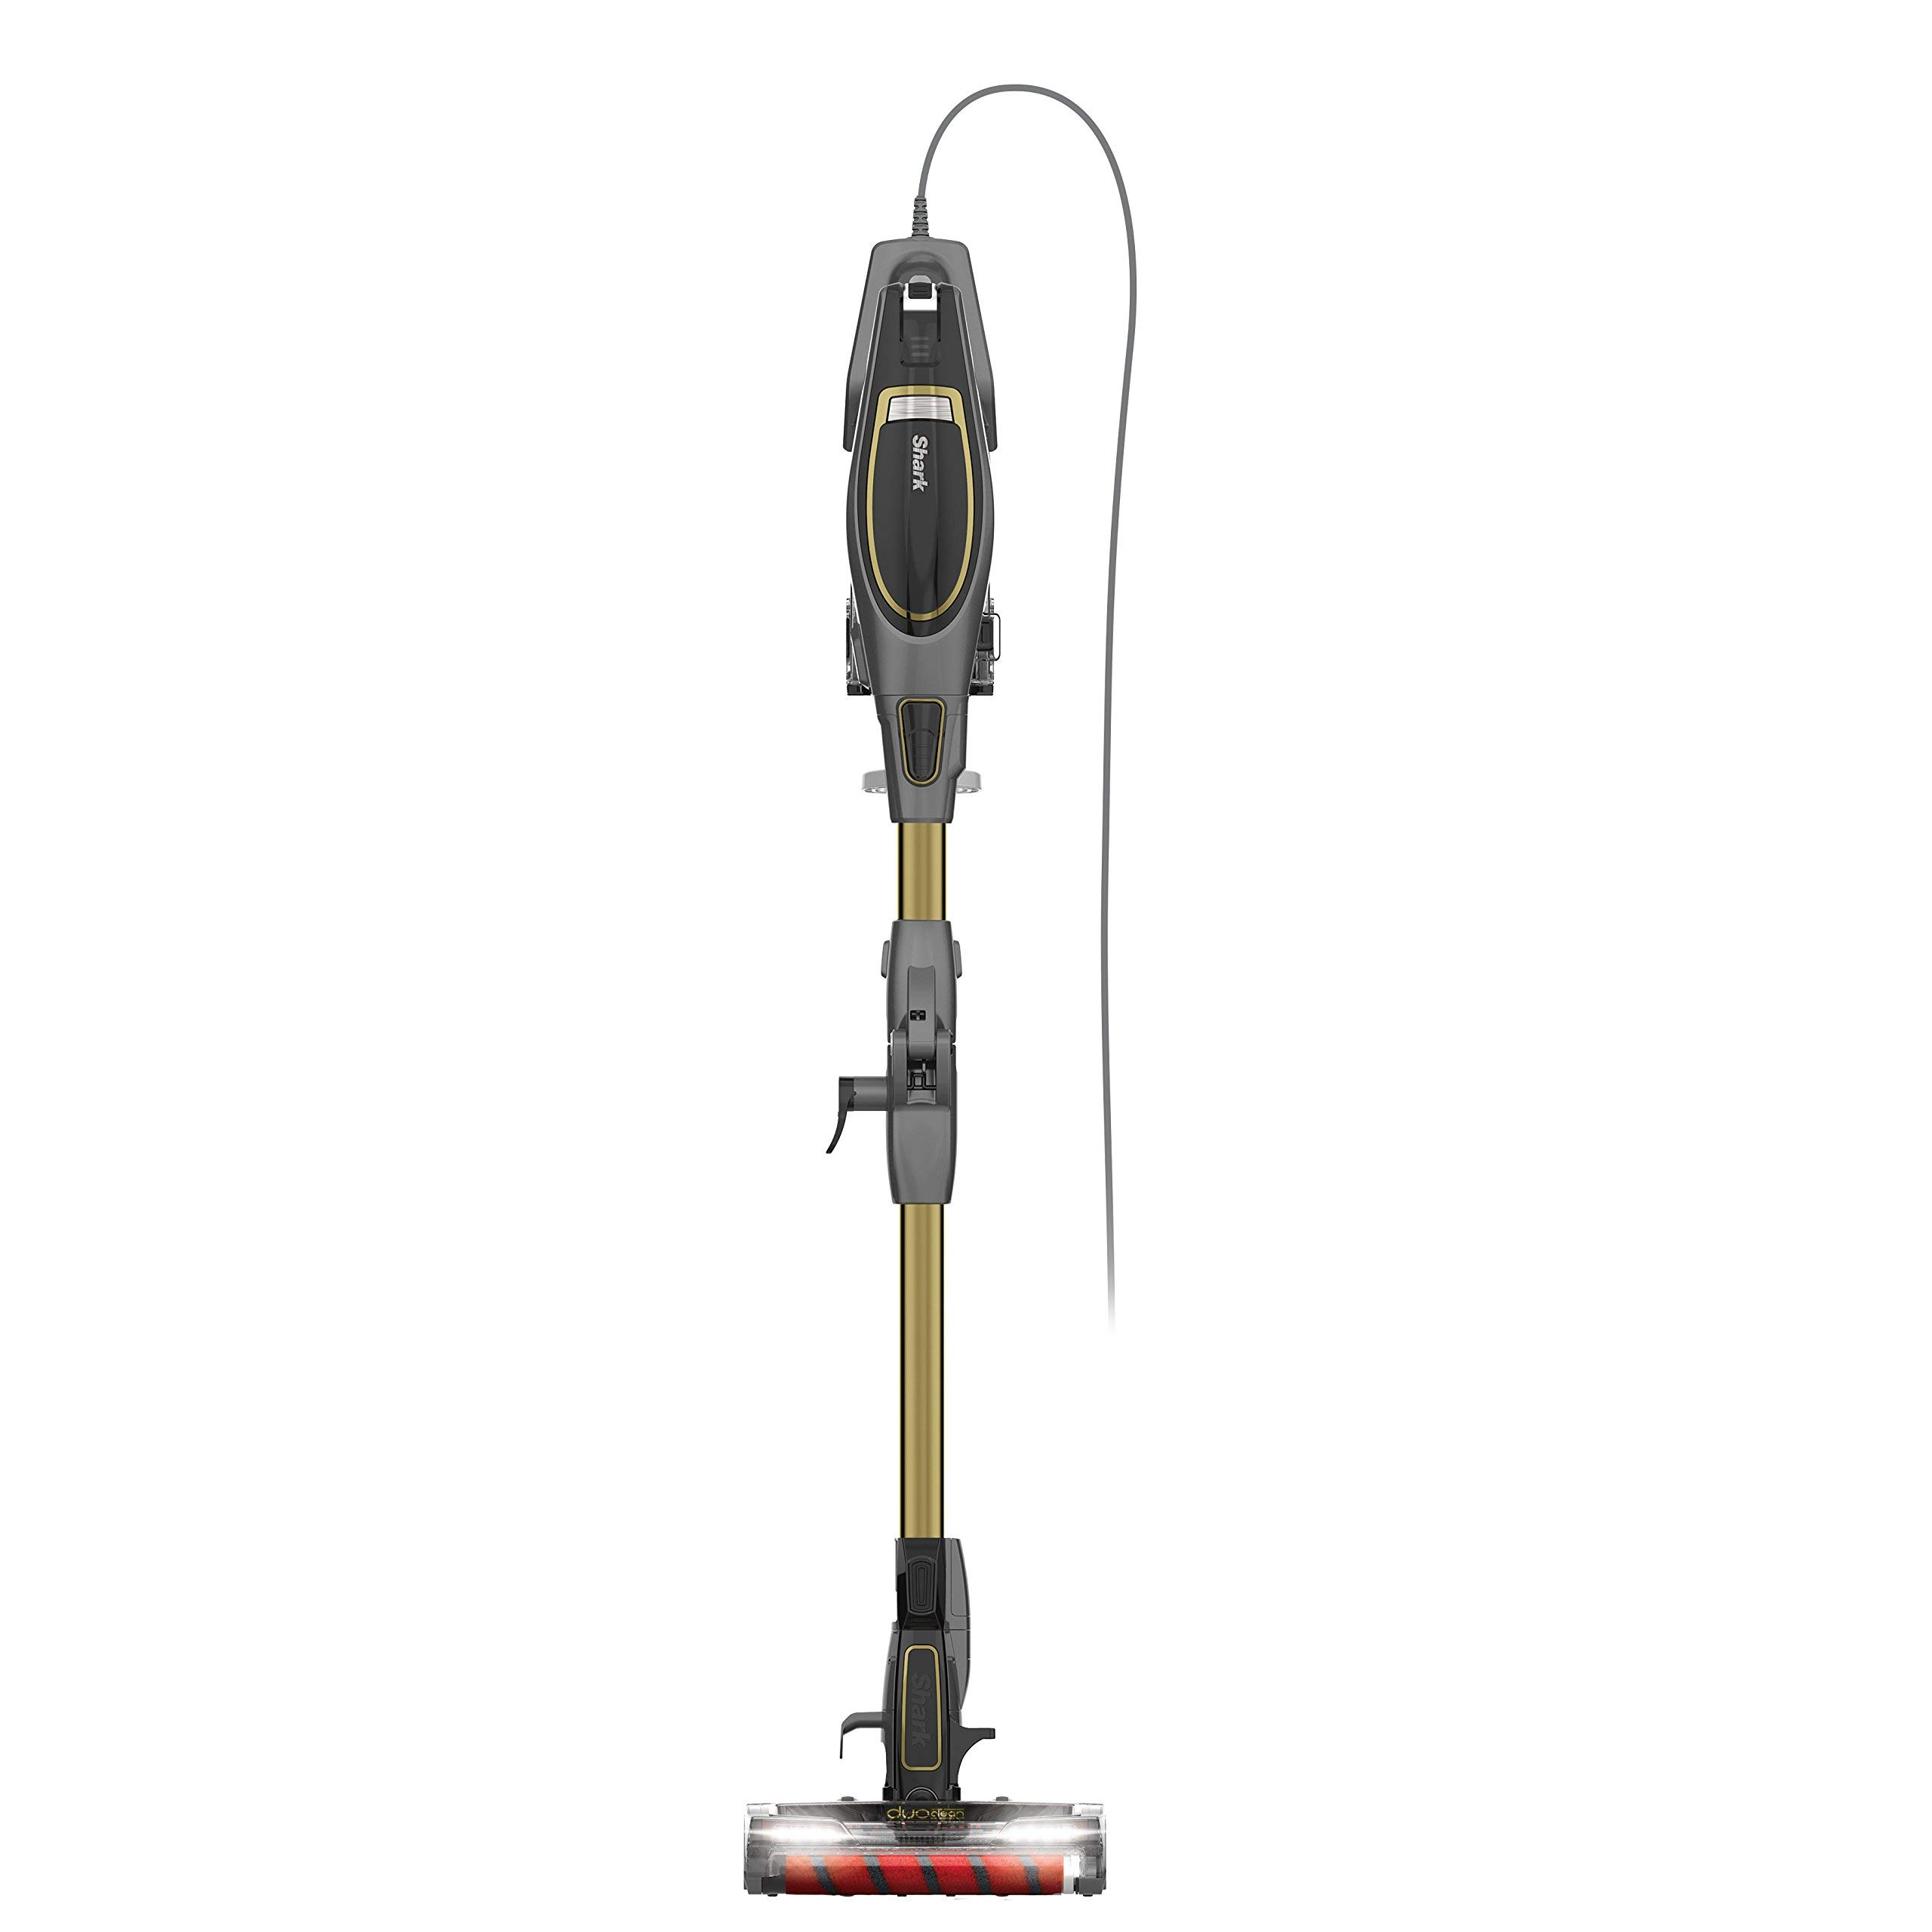 Shark Flex DuoClean Ultra-Light Upright Corded Vacuum for Pet, Carpet and Hard Floor Cleaning with Lift-Away Hand Vacuum (HV391), Gray/Gold (Renewed)